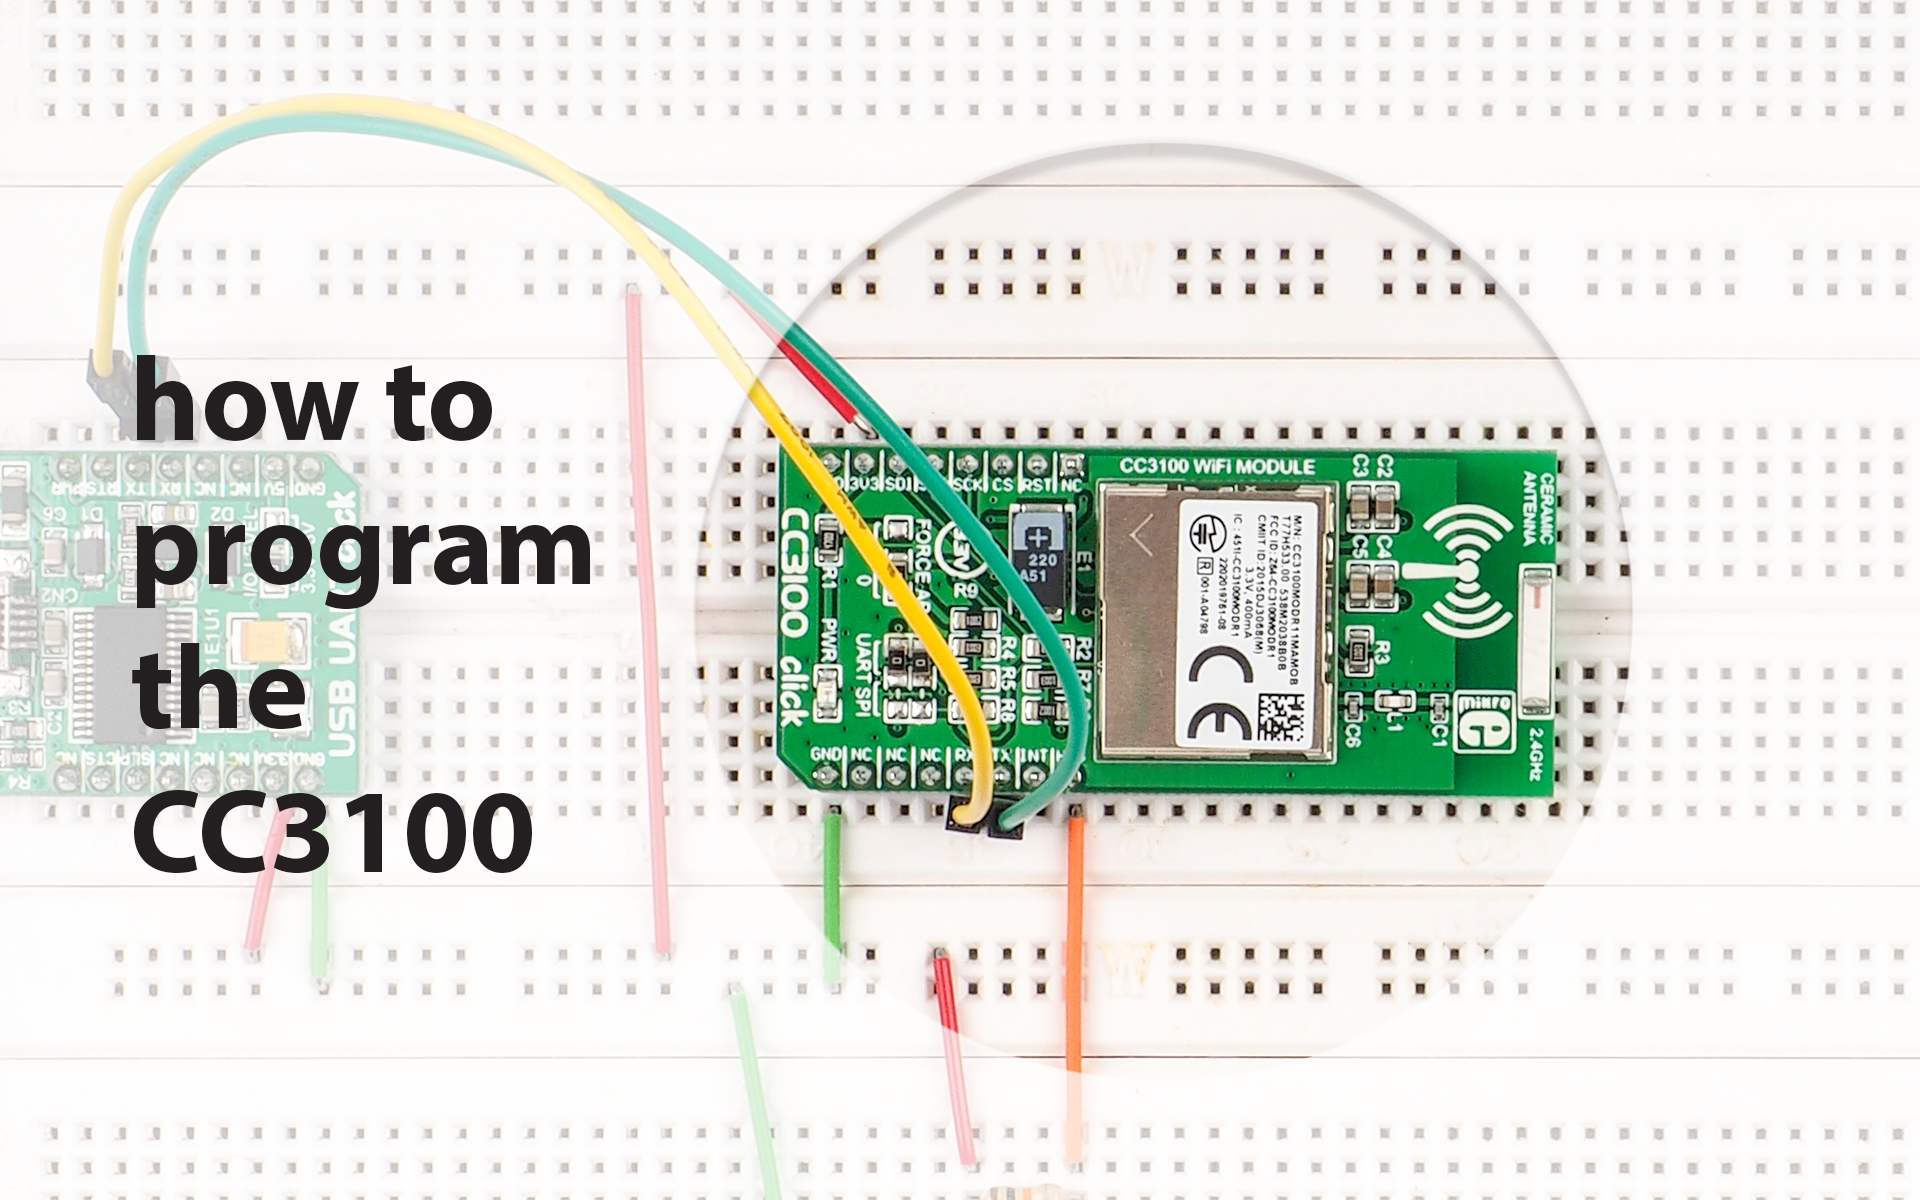 How to program the CC3100 click - a tutorial on electronza.com